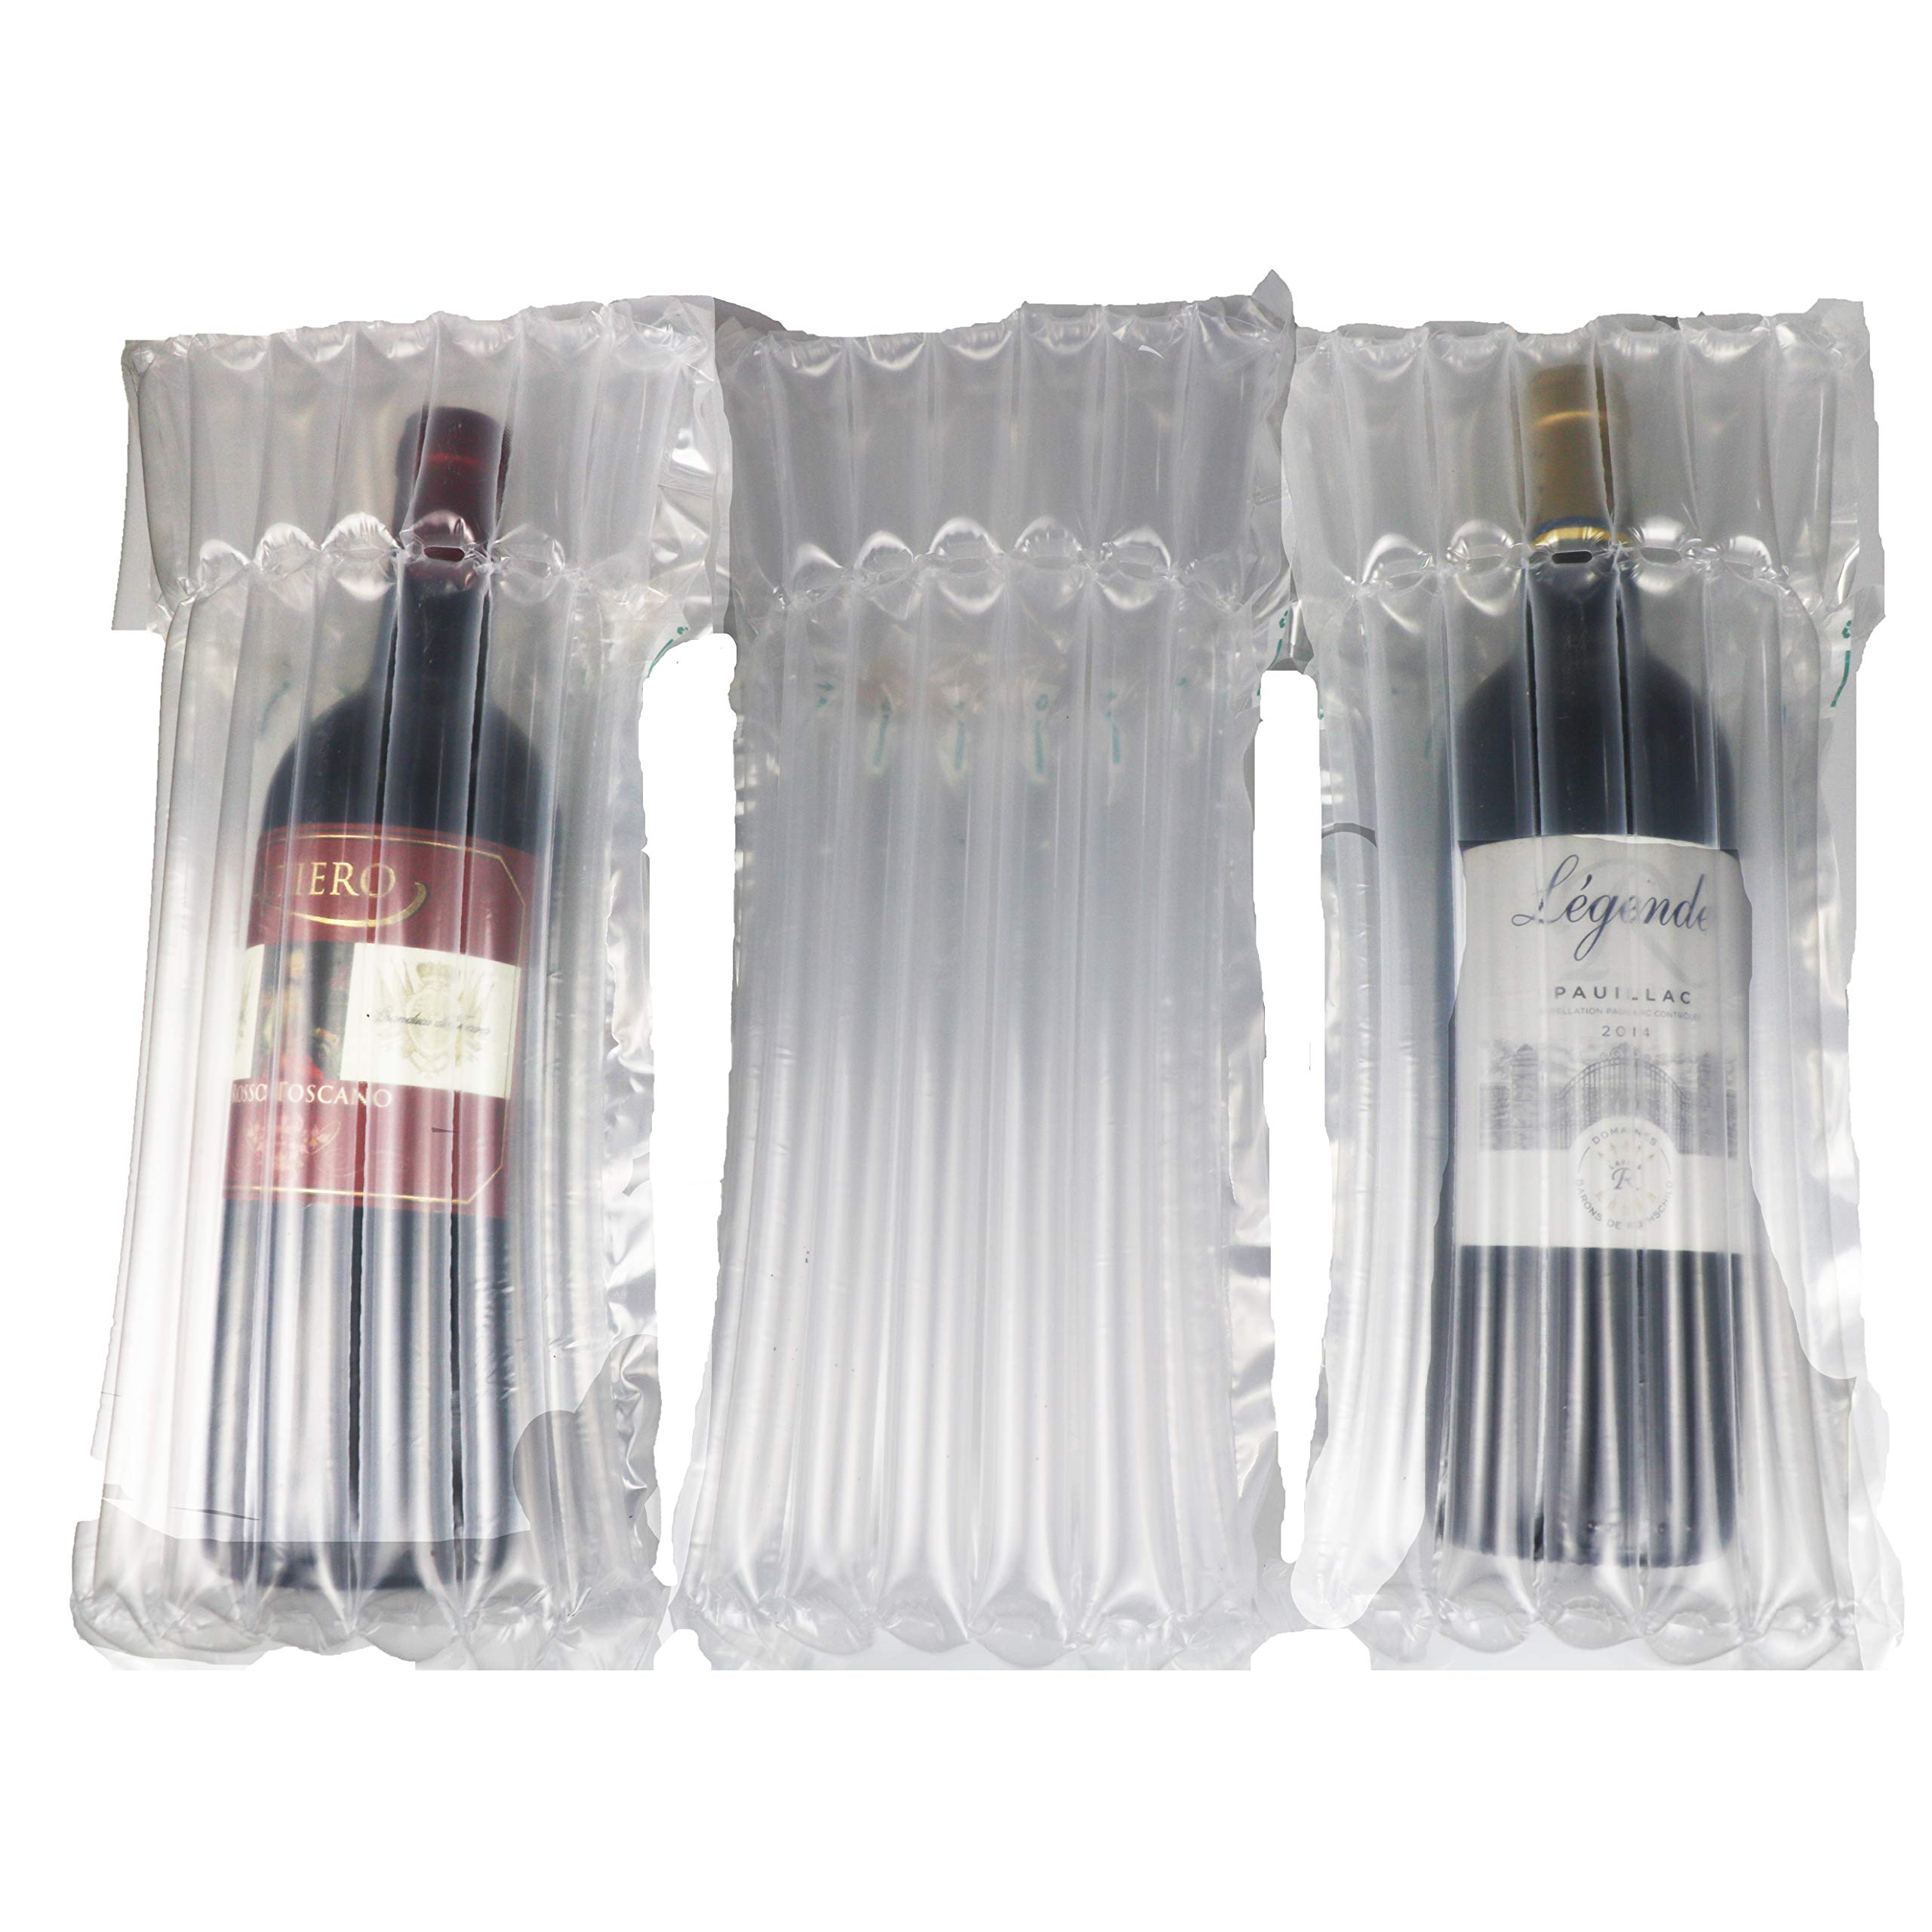 100 PCS Wine Bottle Protector Sleeve for Travel, Shipment. Inflatable Air Column Cushion Bag for Packing and Safe Transportation of Glass Bottles in Airplane Cushioning by Nowable (Image #1)